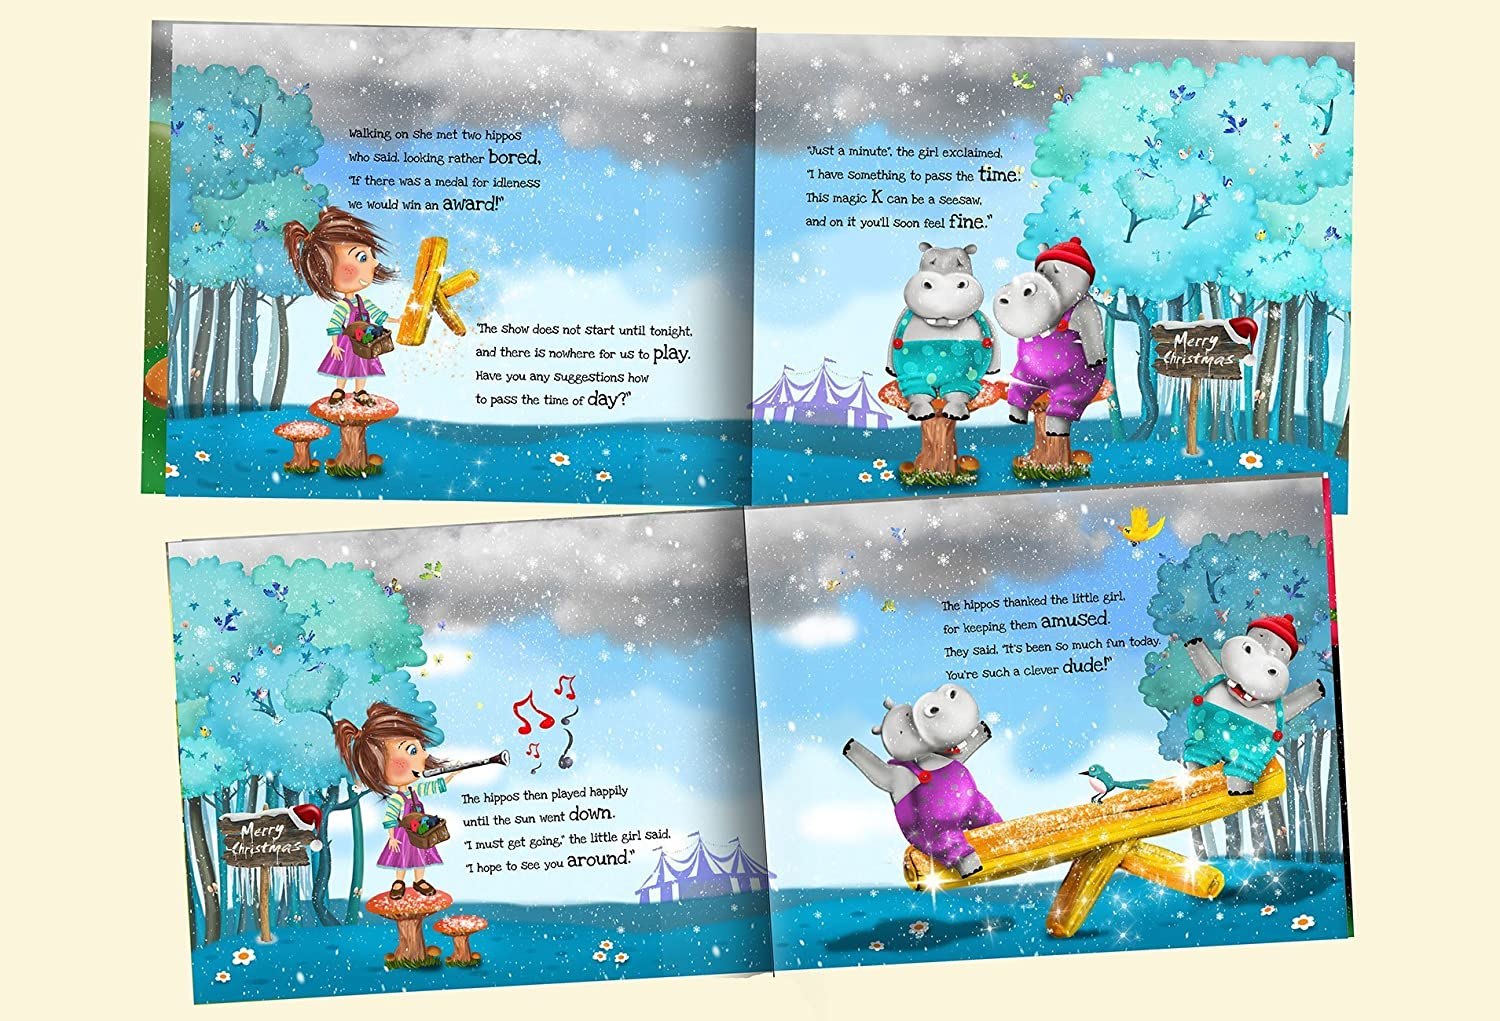 Amazon.com: Customized Christmas Story Book with Santa - Unique for ...